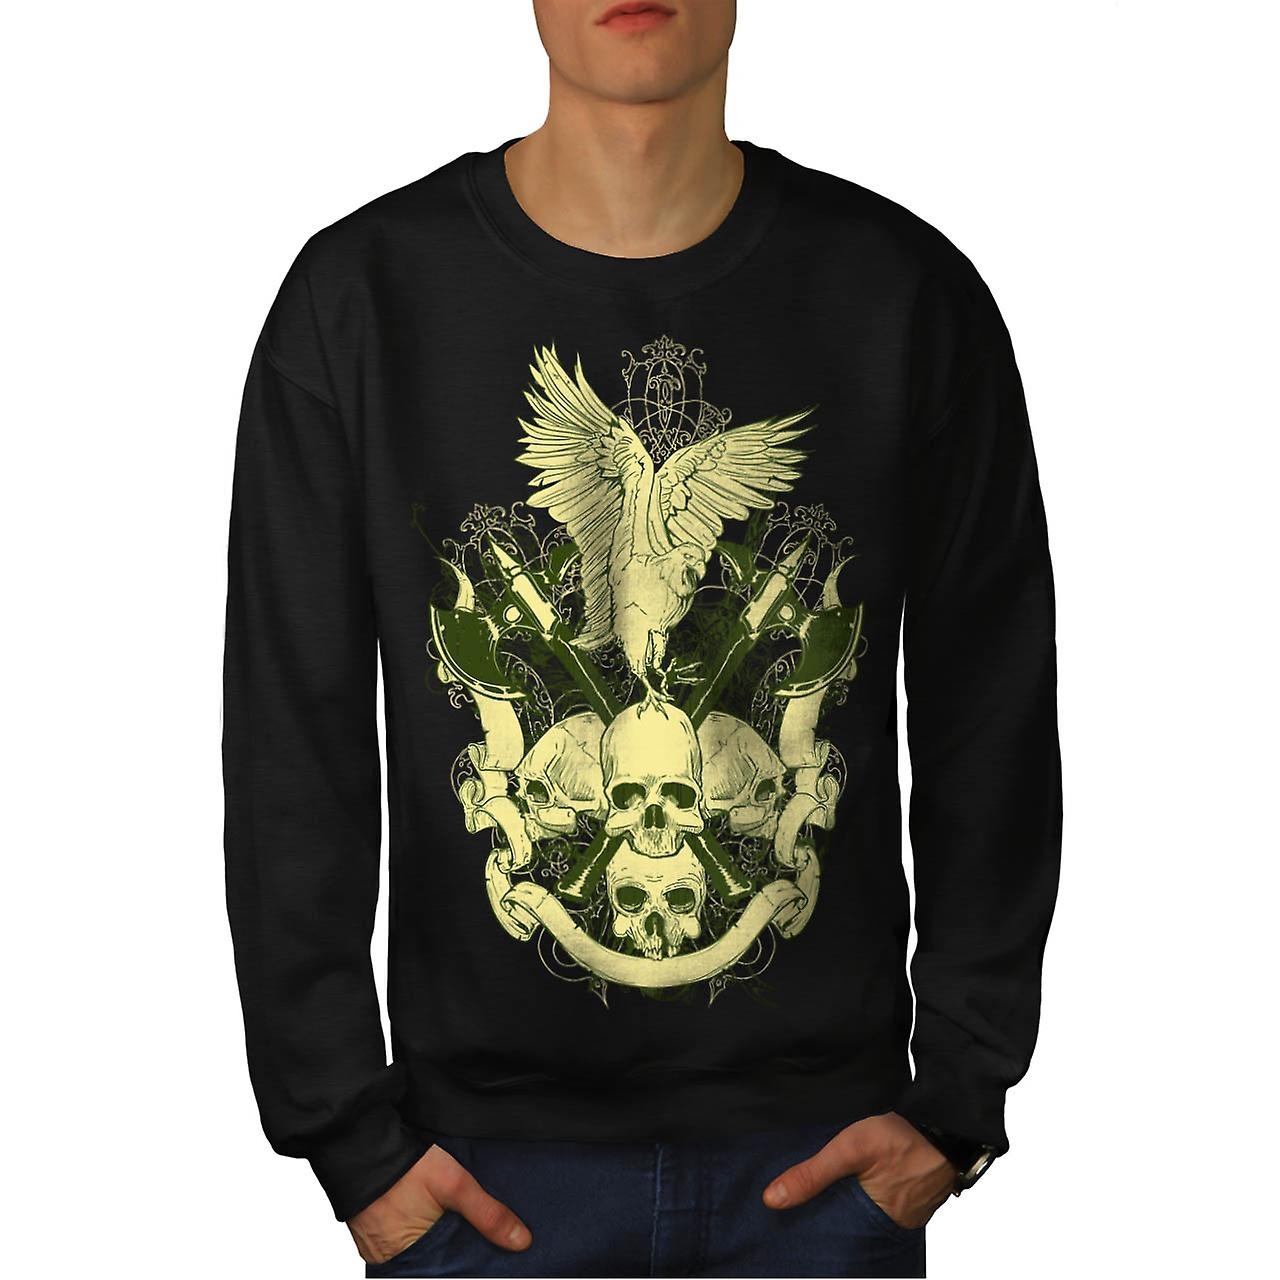 Eagle Bird Skull Axe Battle Fear Men Black Sweatshirt | Wellcoda